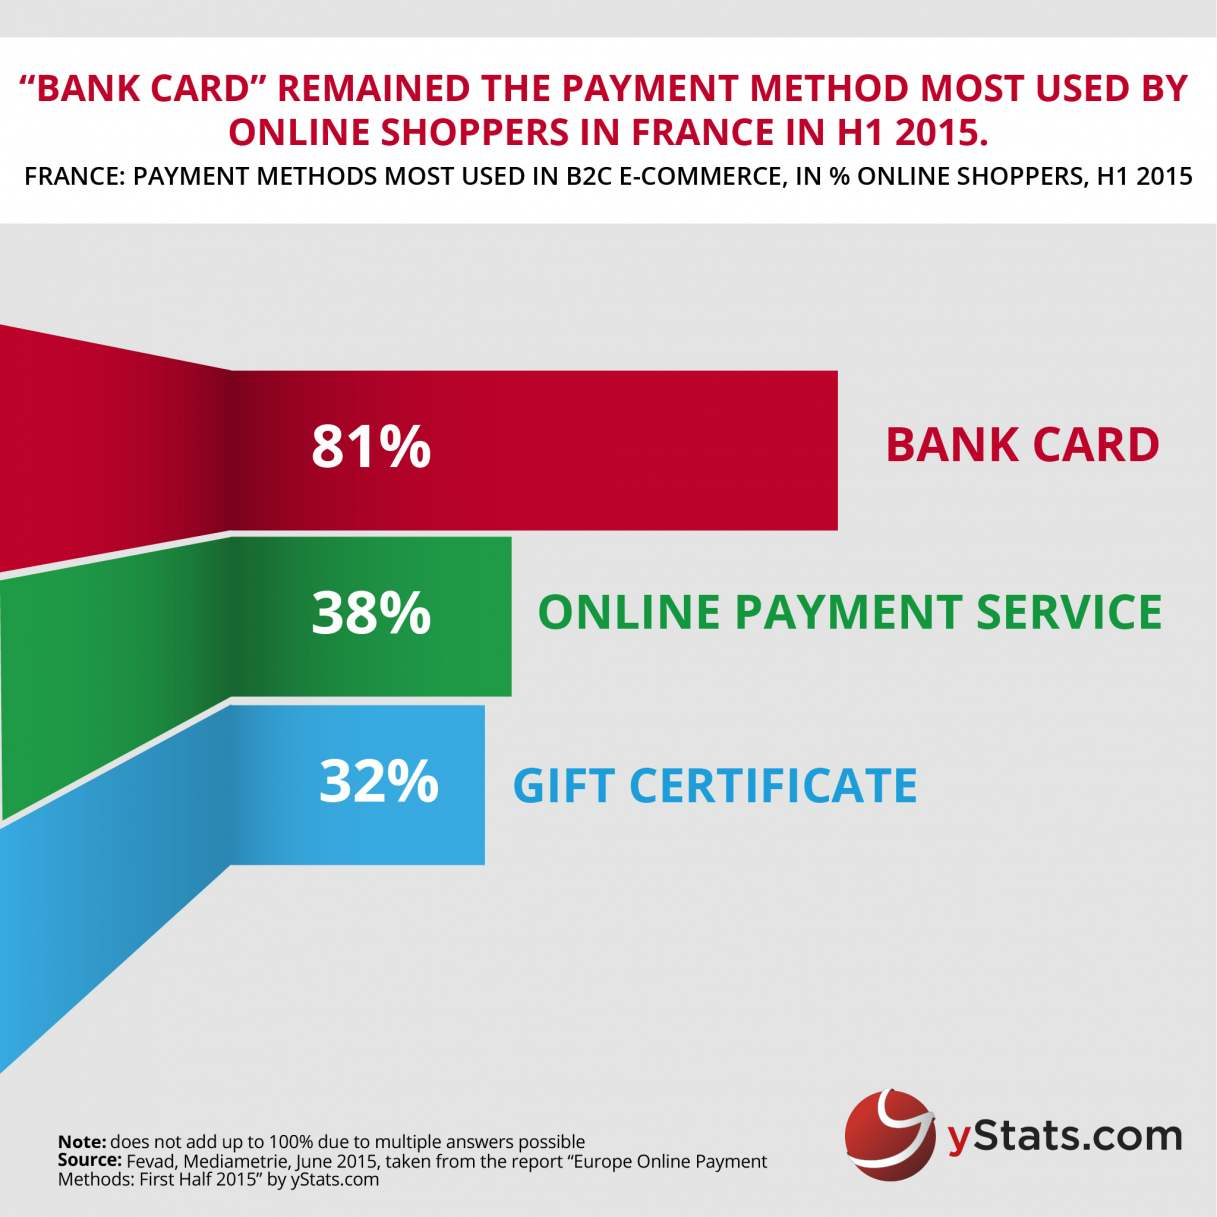 Preference For Online Payment Methods Differ Between